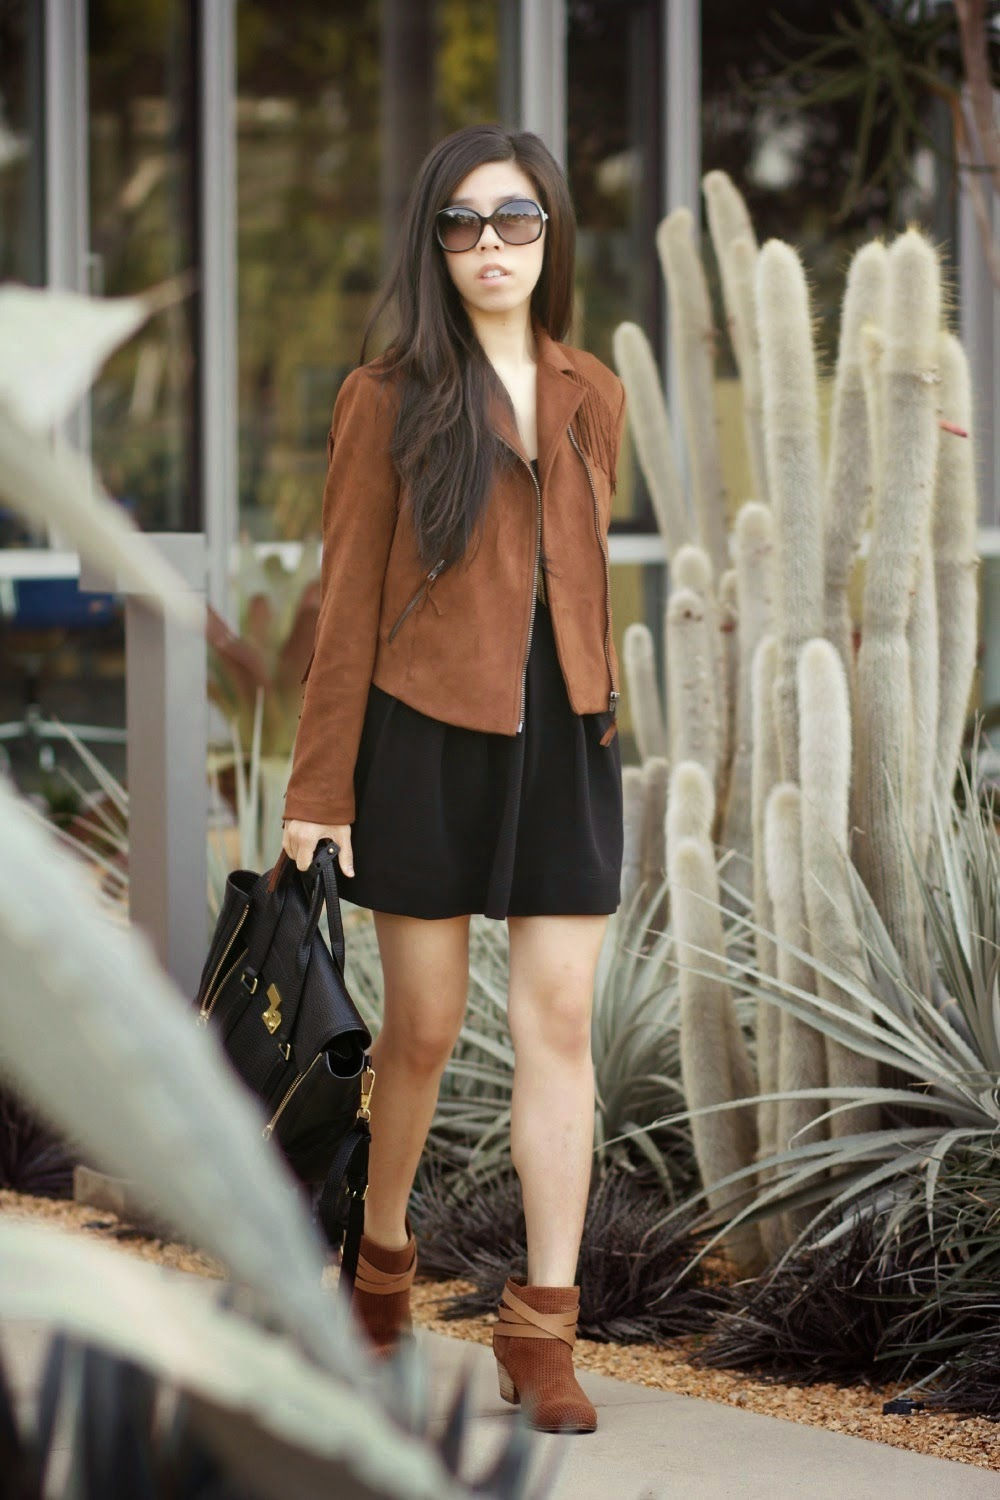 Suede Brown Fringe MURAL Zipper Jacket, Black Sugarlips Skater Dress, Casual Weekend Everyday Look